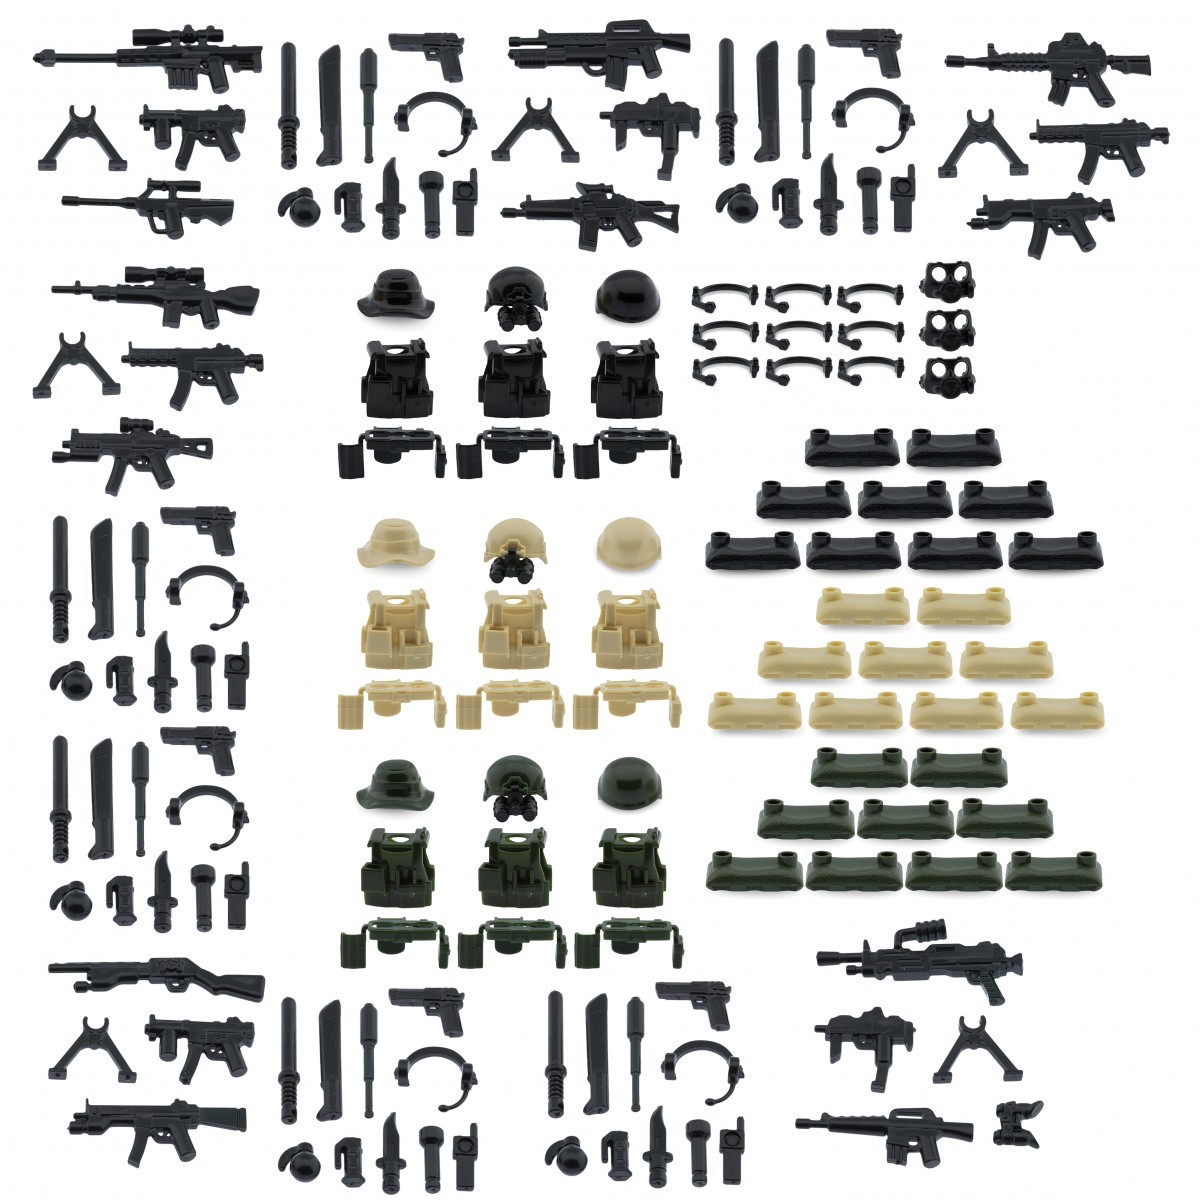 Weapons pack for lego minifigures minifig accessories modern weapons with armor and sandbags set